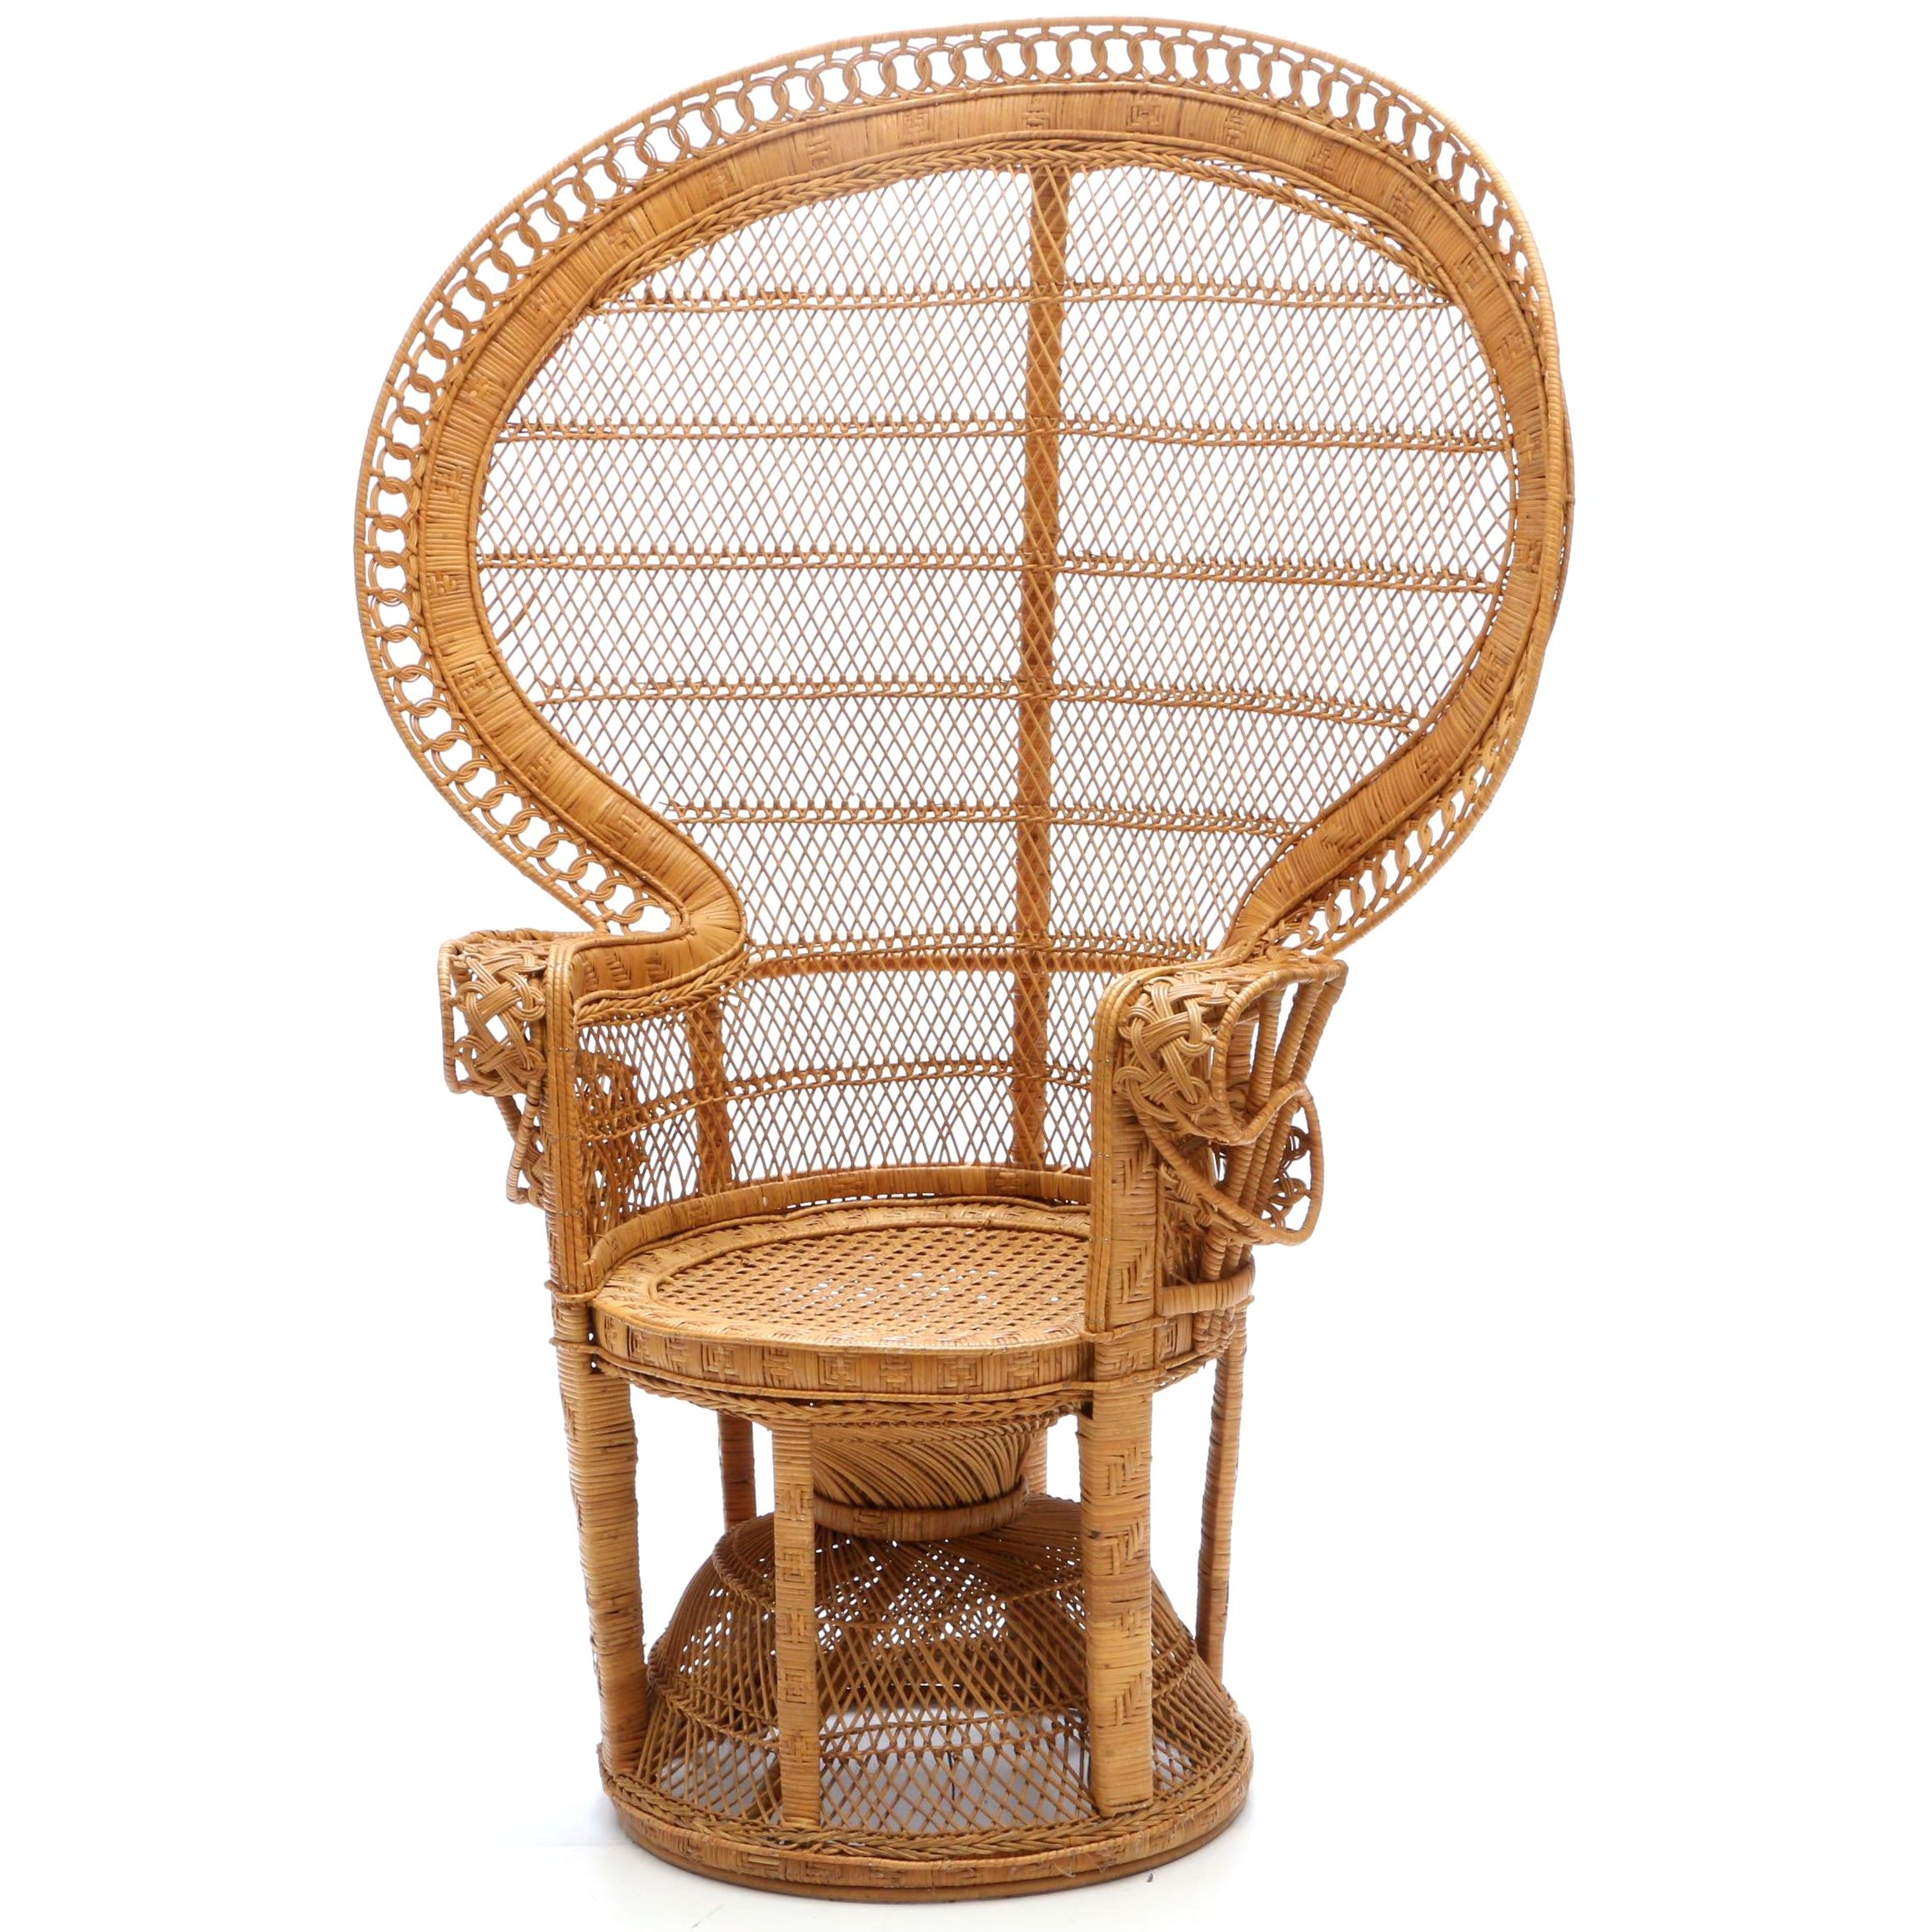 Woven Wicker Peacock Chair